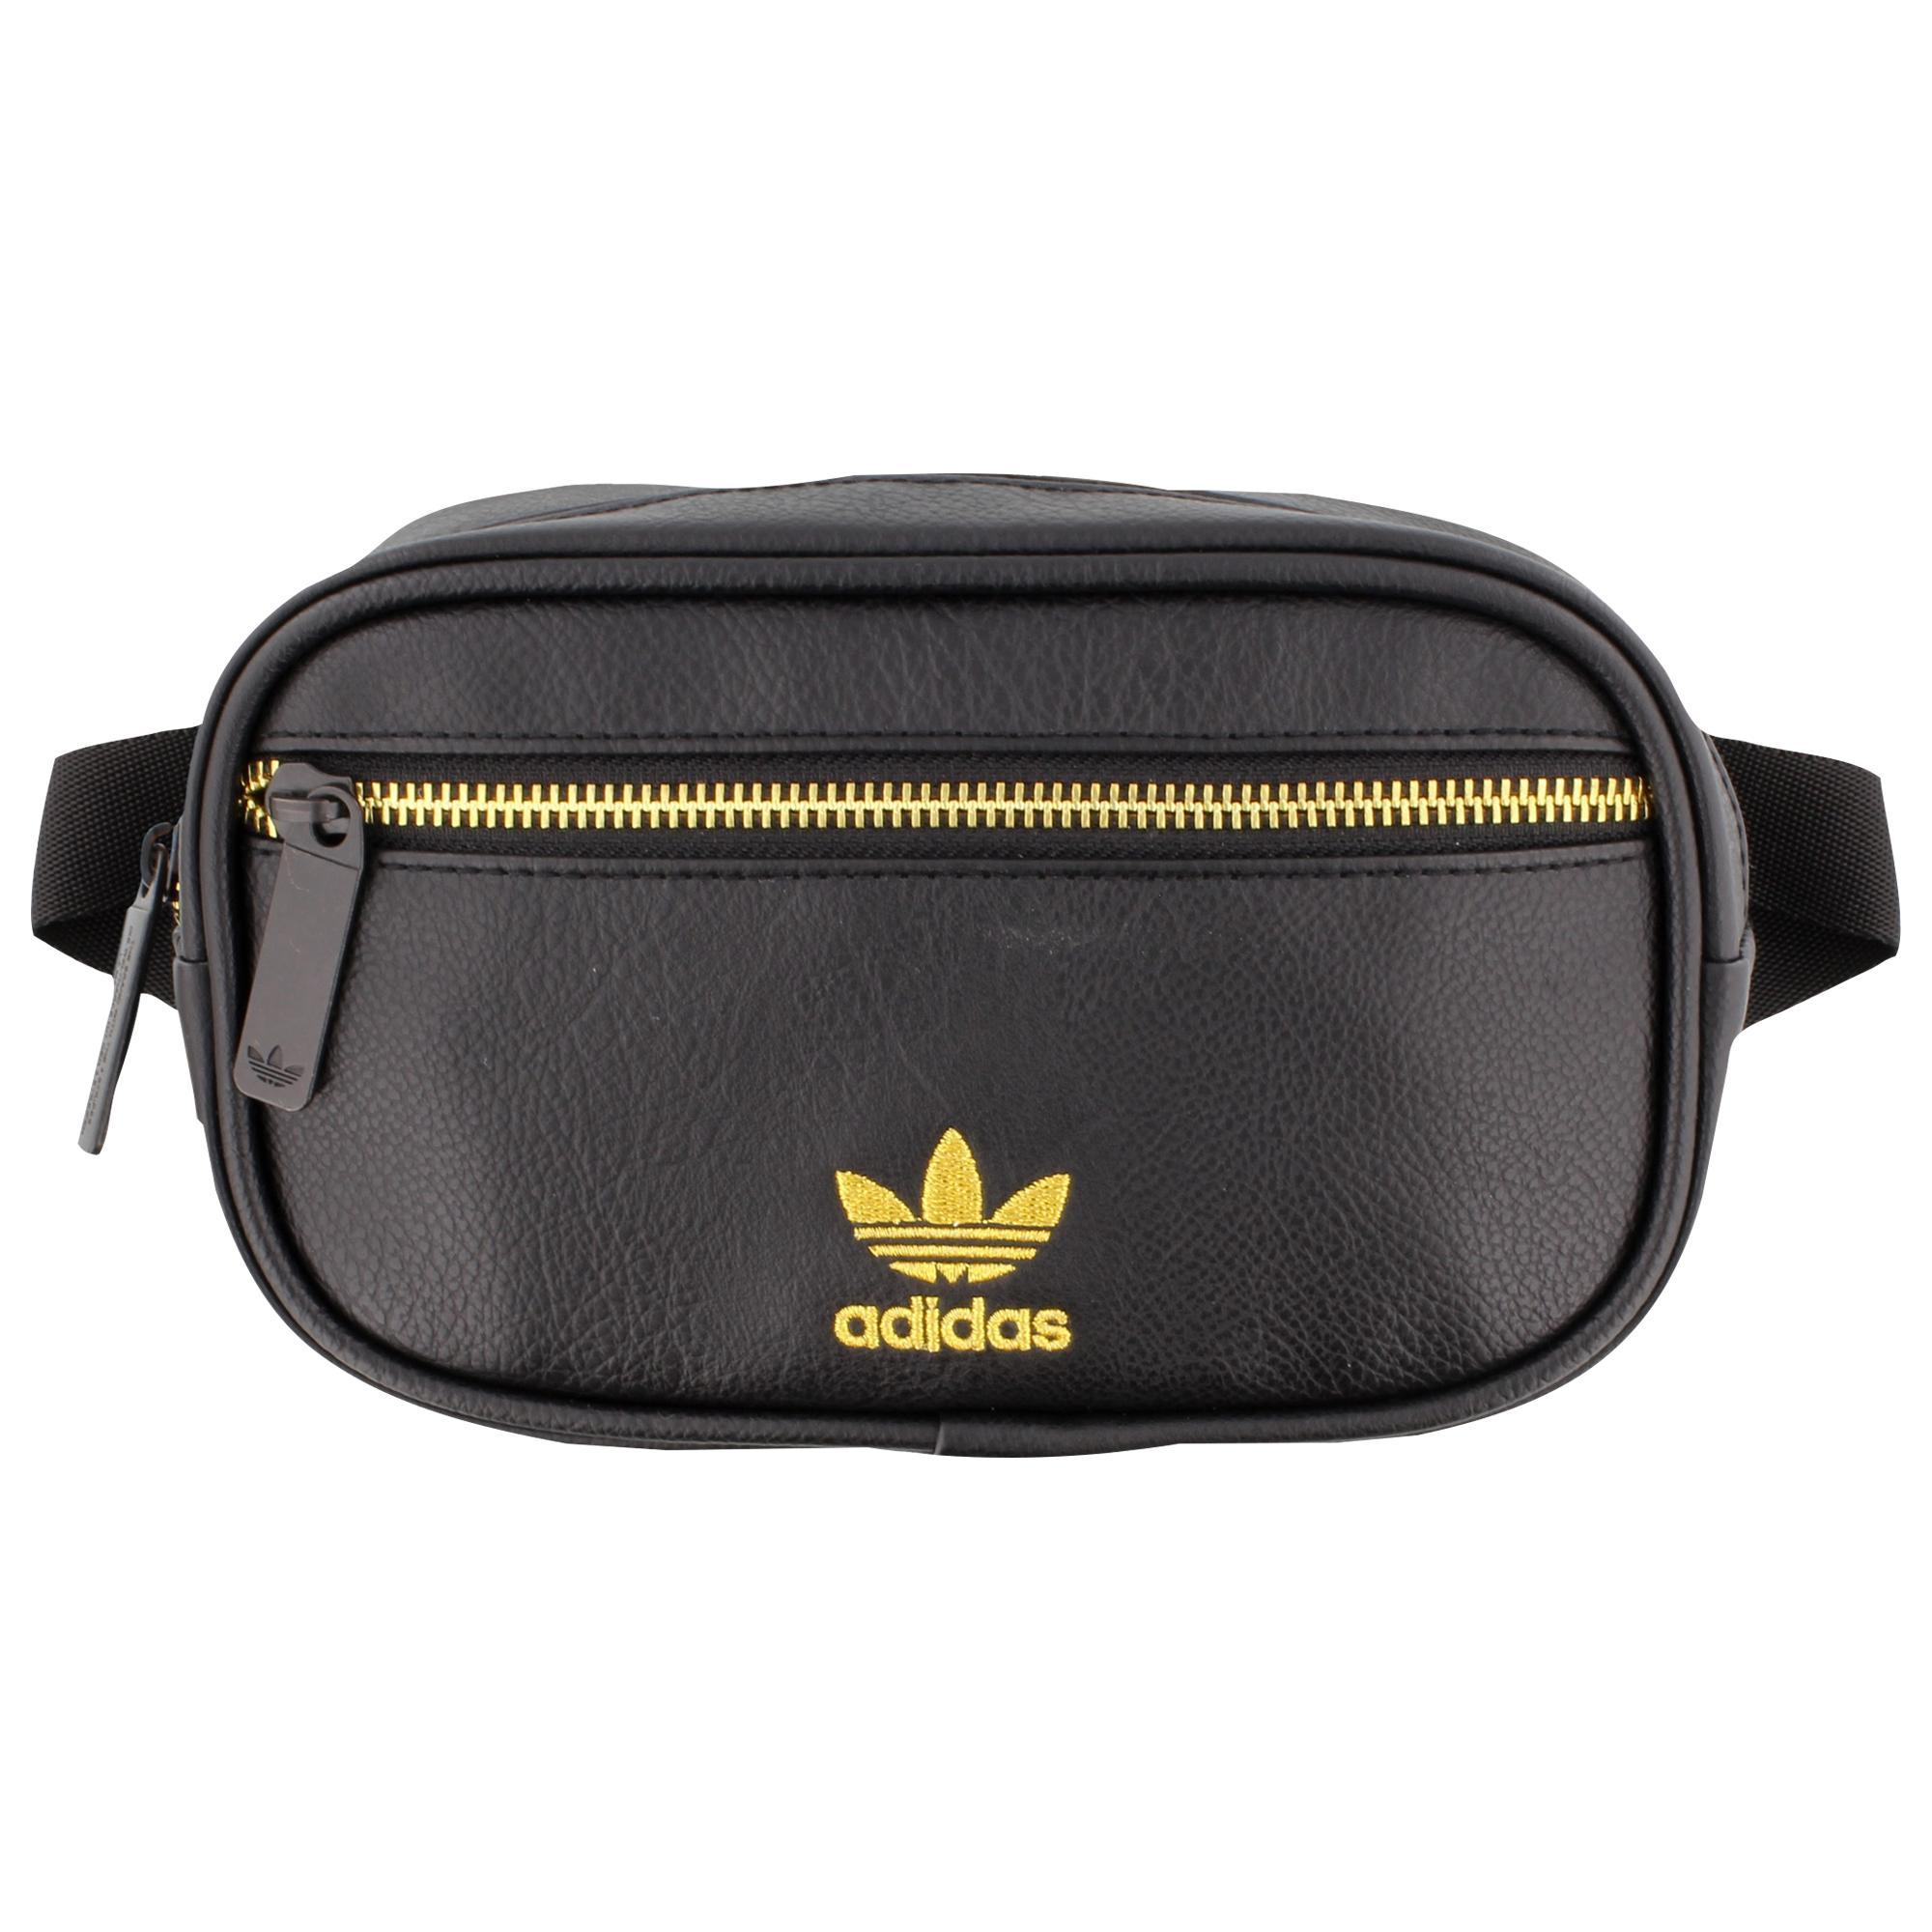 dbe7ee6ad75e Lyst - adidas Originals Pu Leather Waist Pack in Black for Men